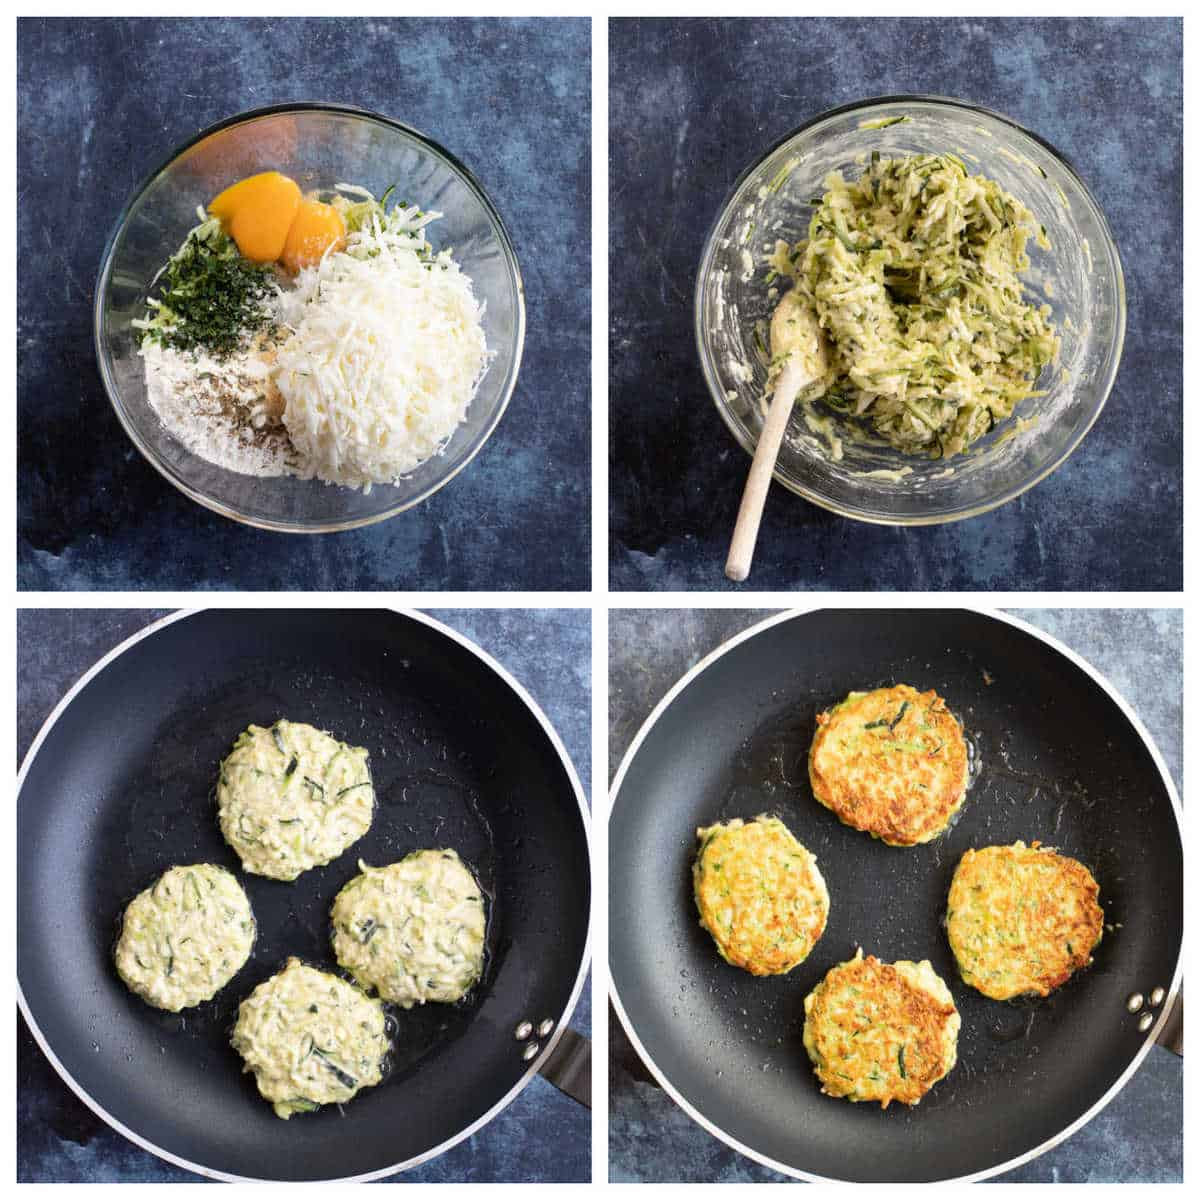 Step by step photo instructions for making courgette fritters.